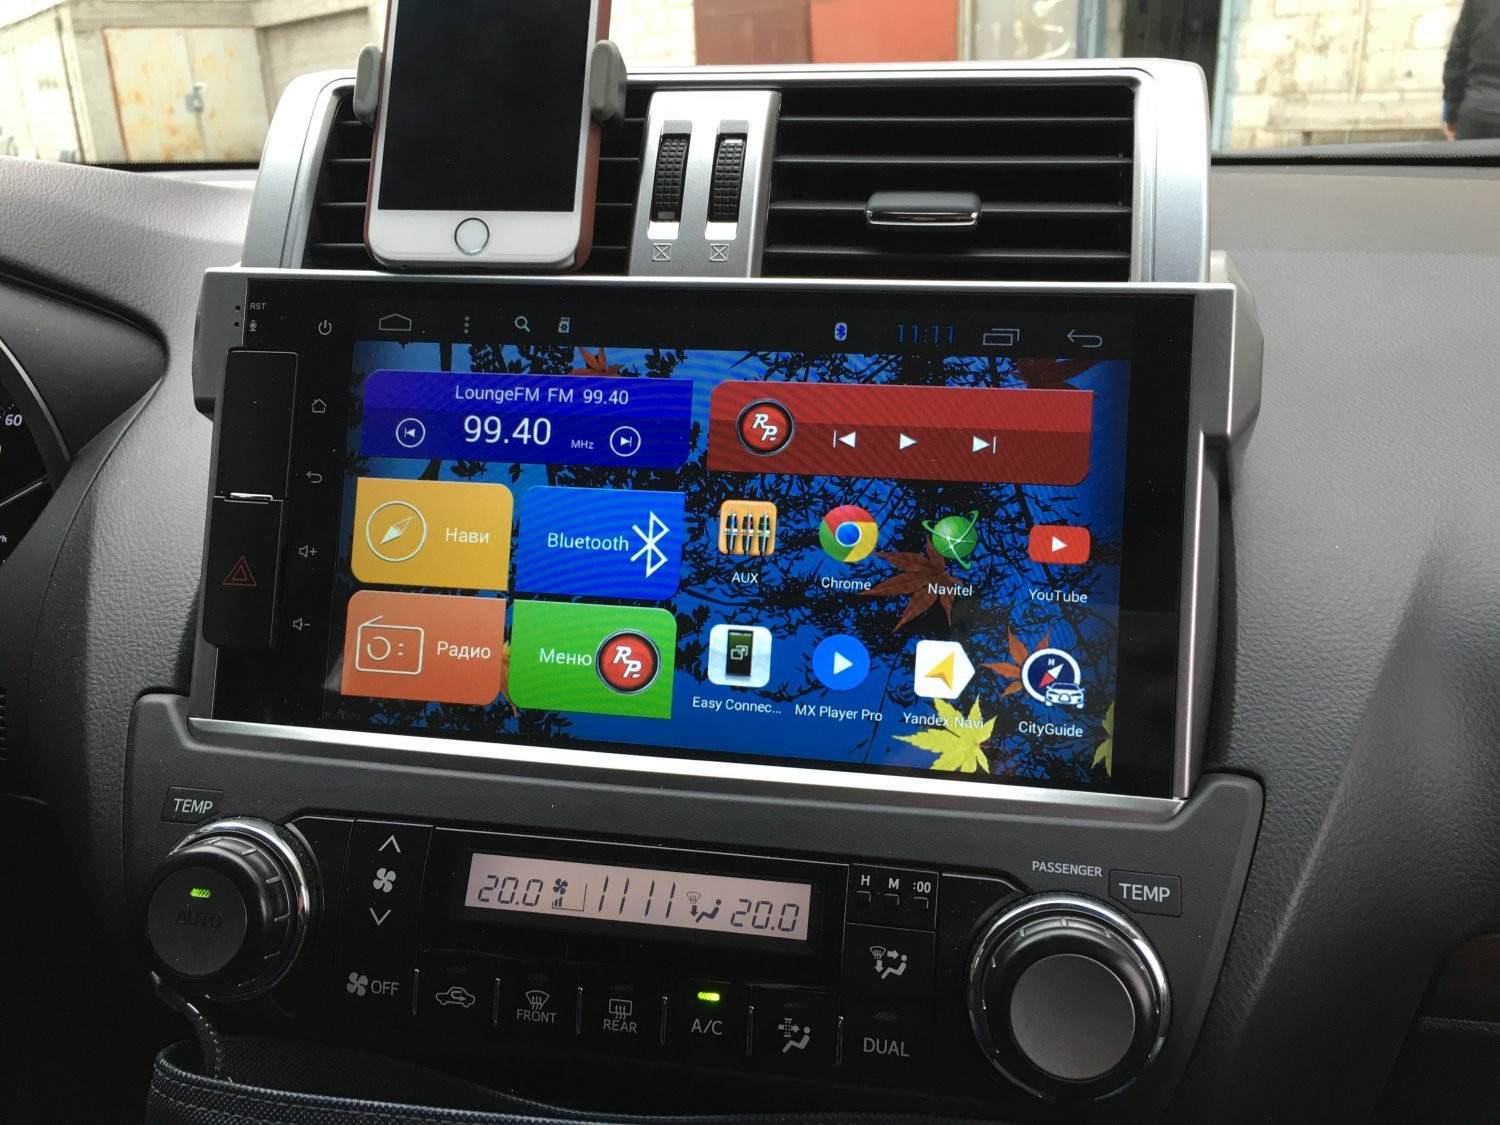 Автомагнитола Toyota Prado 150 на Android 6.0 (Marshmallow) RedPower 31265 IPS 2008 г